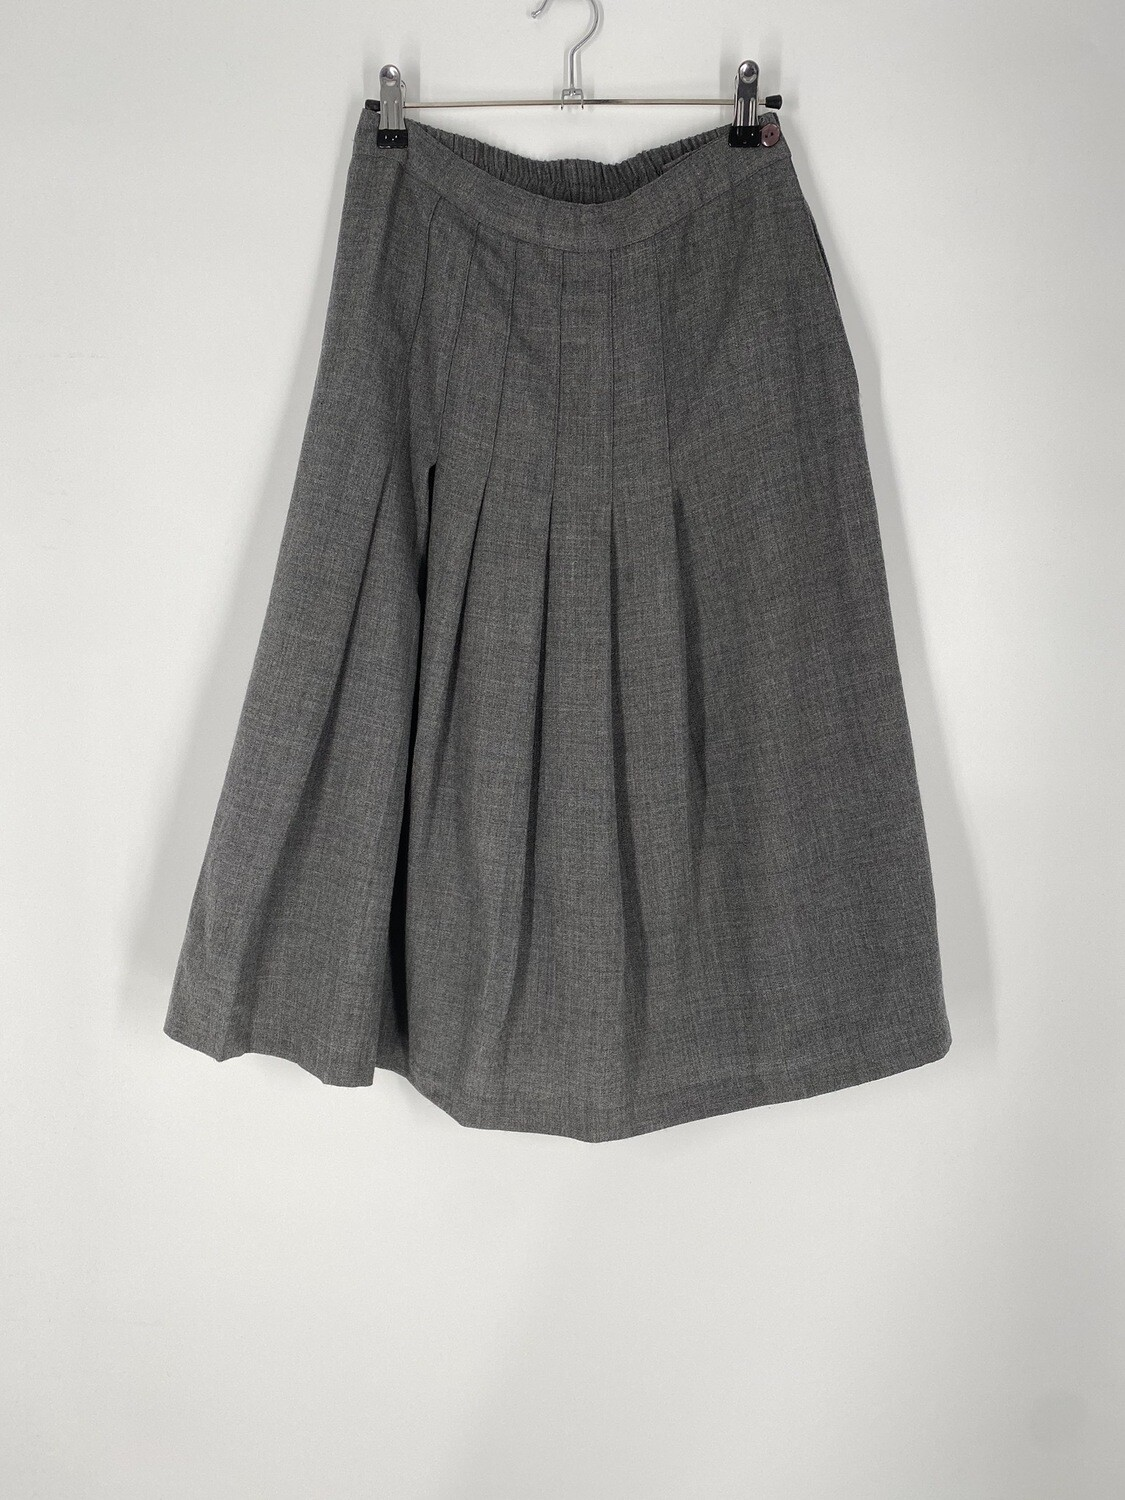 Alfred Dunner Grey Skirt Size M